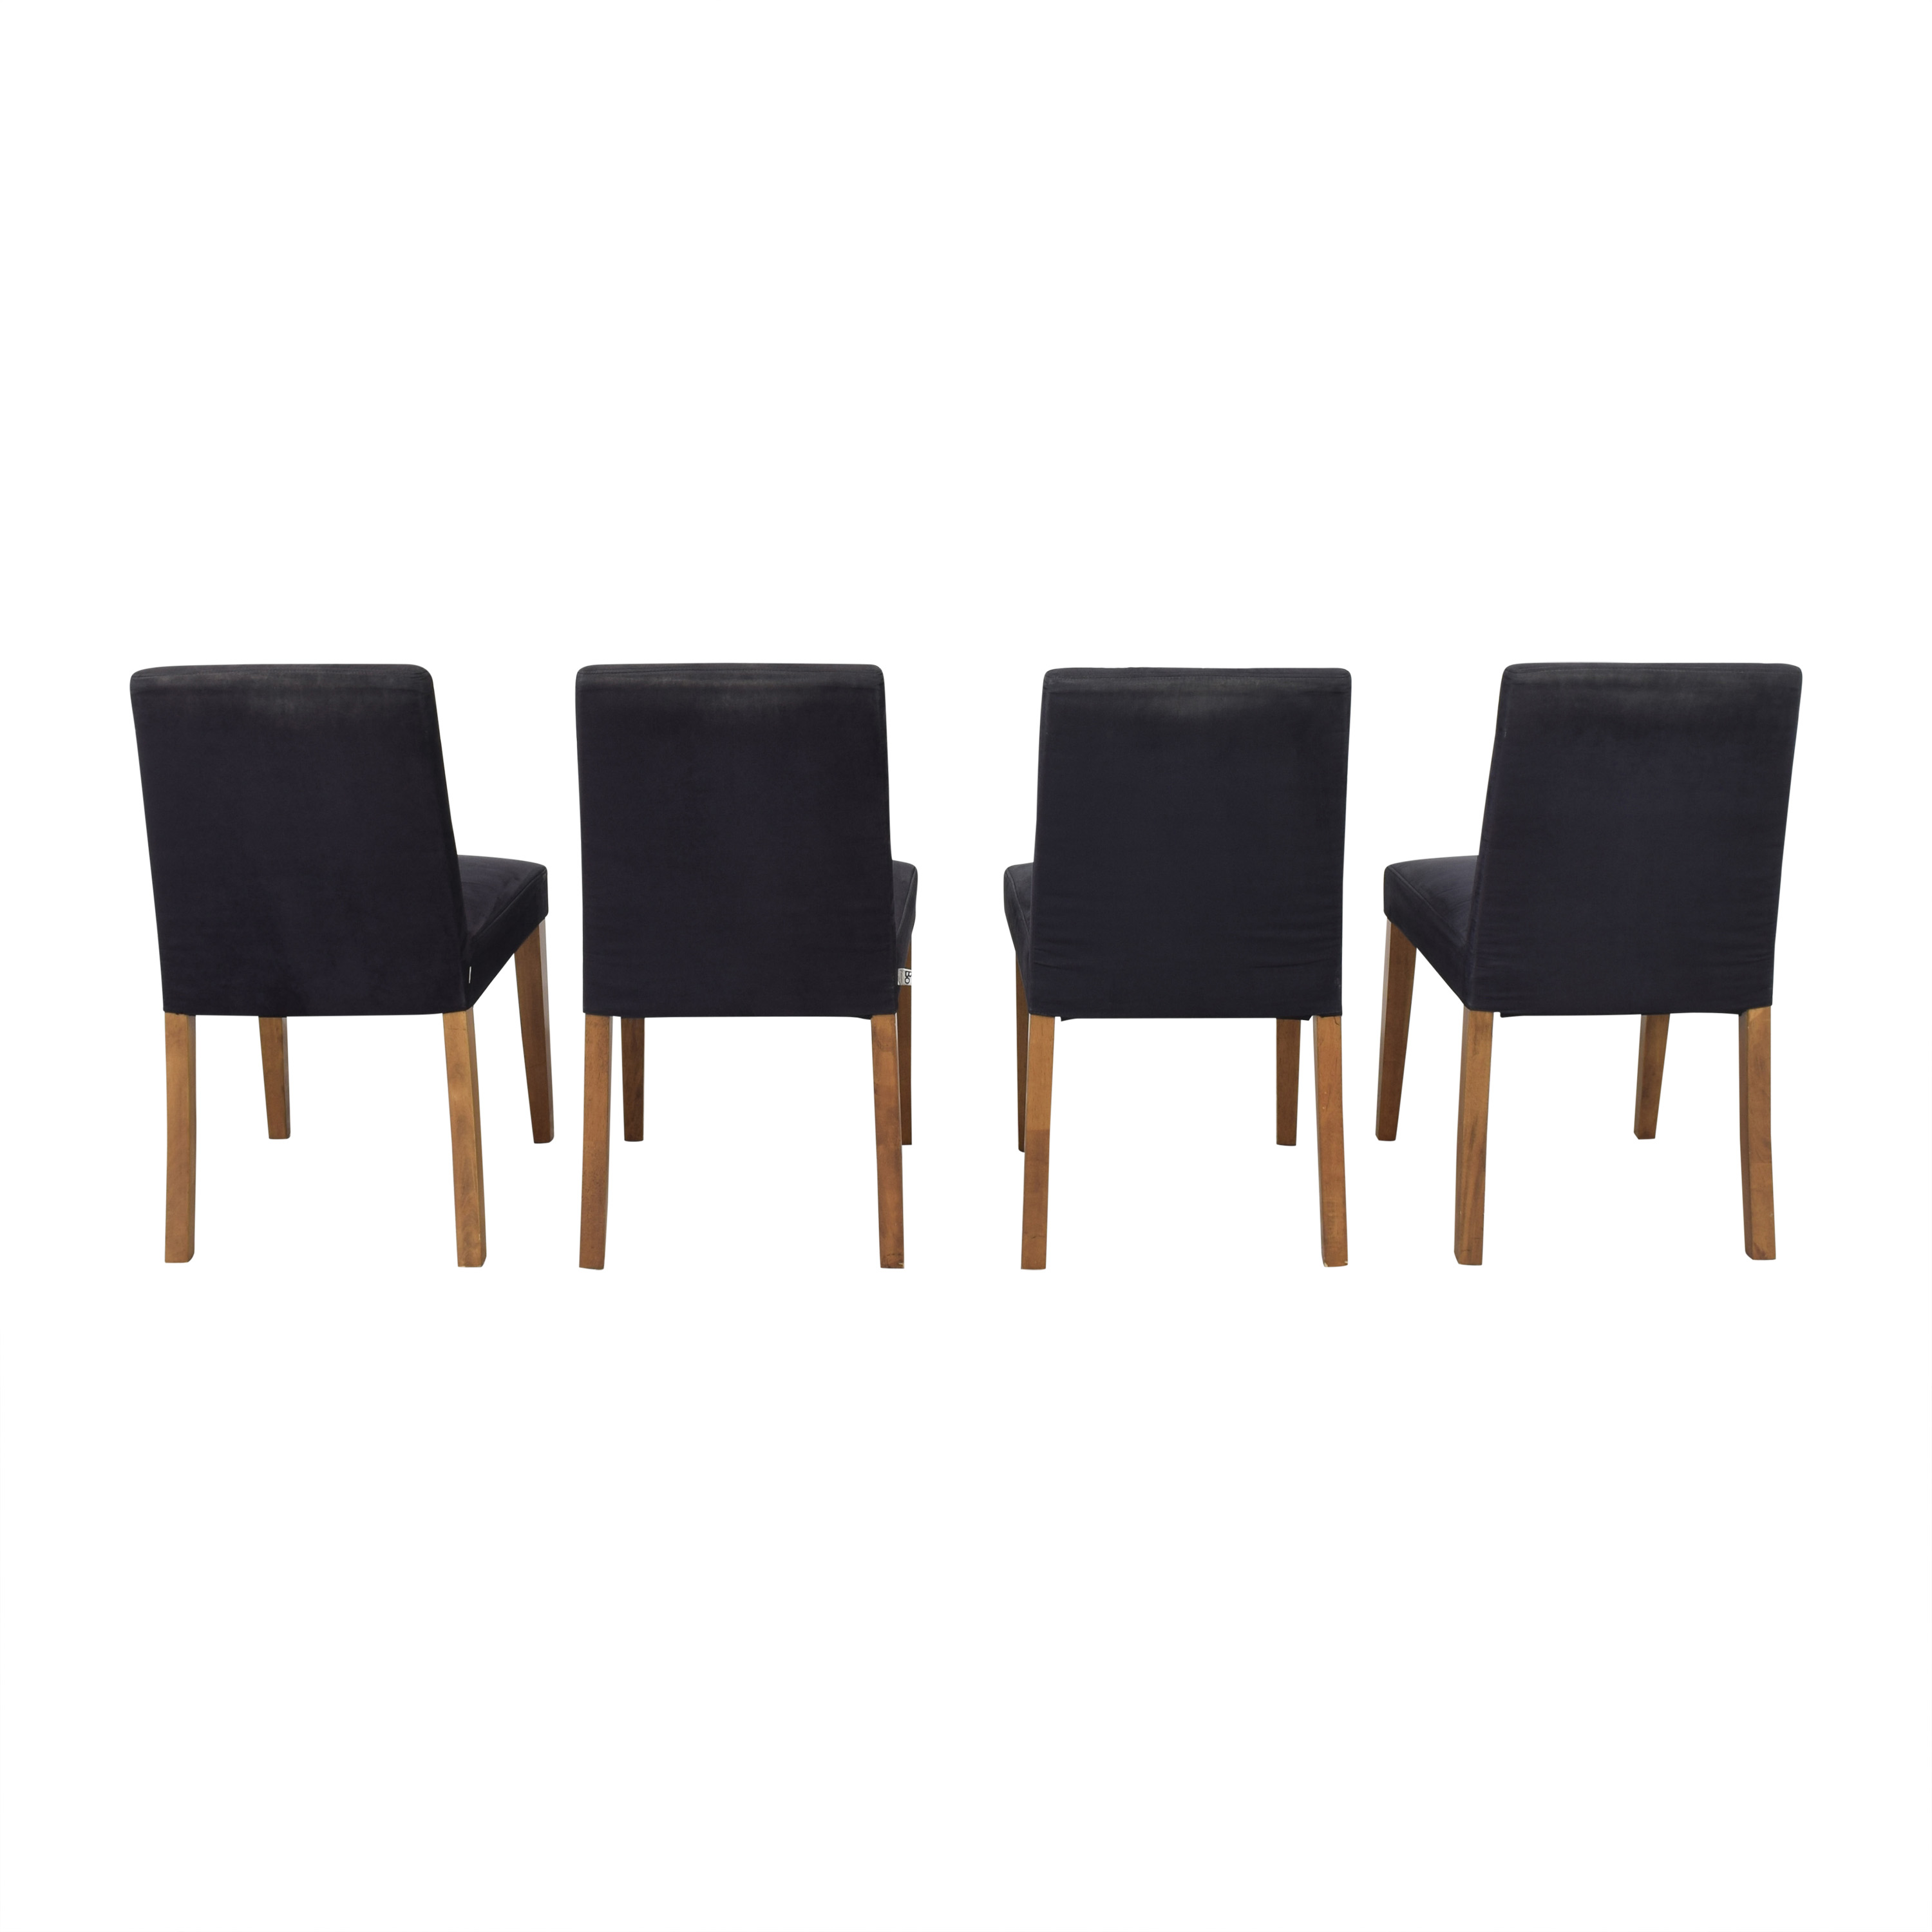 BoConcept Cantono Upholstered Chairs / Dining Chairs